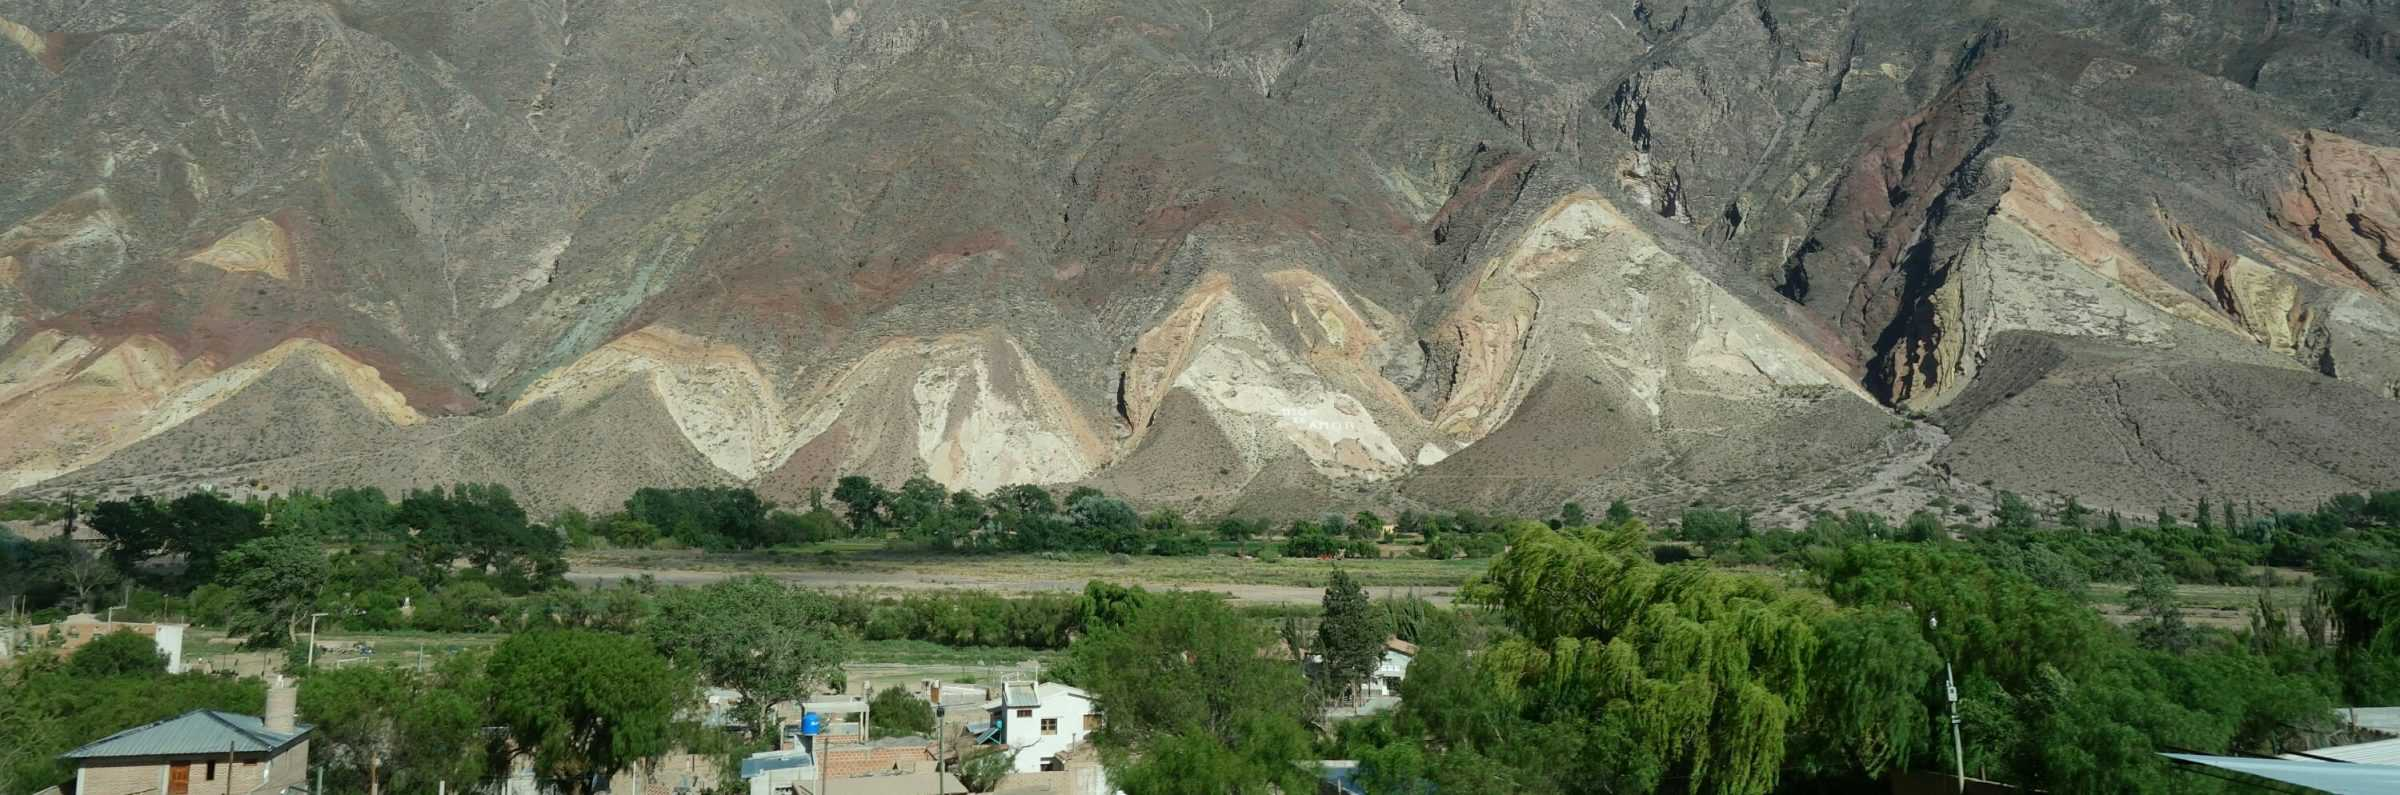 Multi-coloured mountains, Quebrada de Humahuaca, Argentina